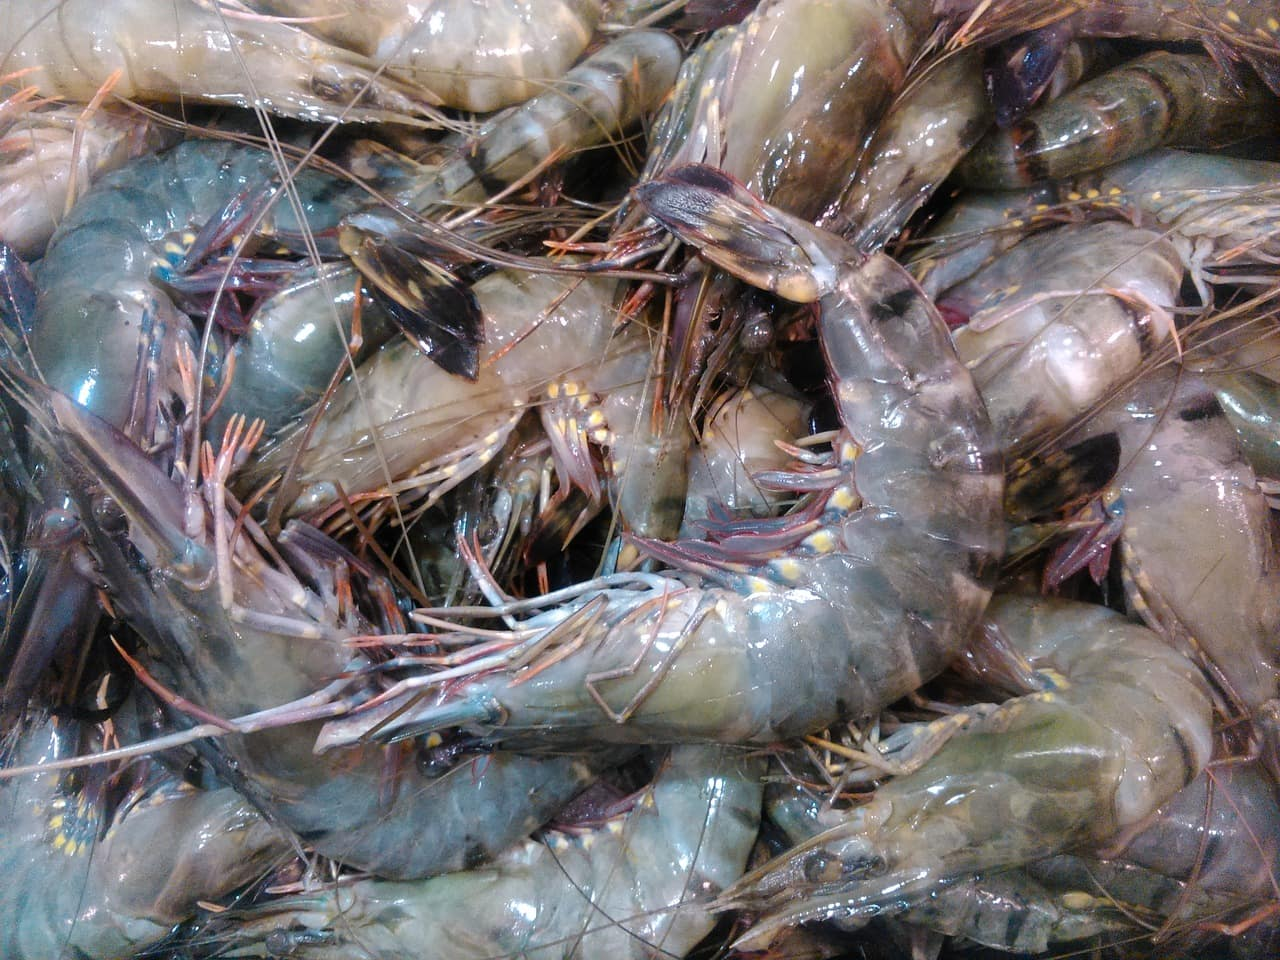 The Shrimp Industry's Awful Issue of Slave Labor Continues To Plague